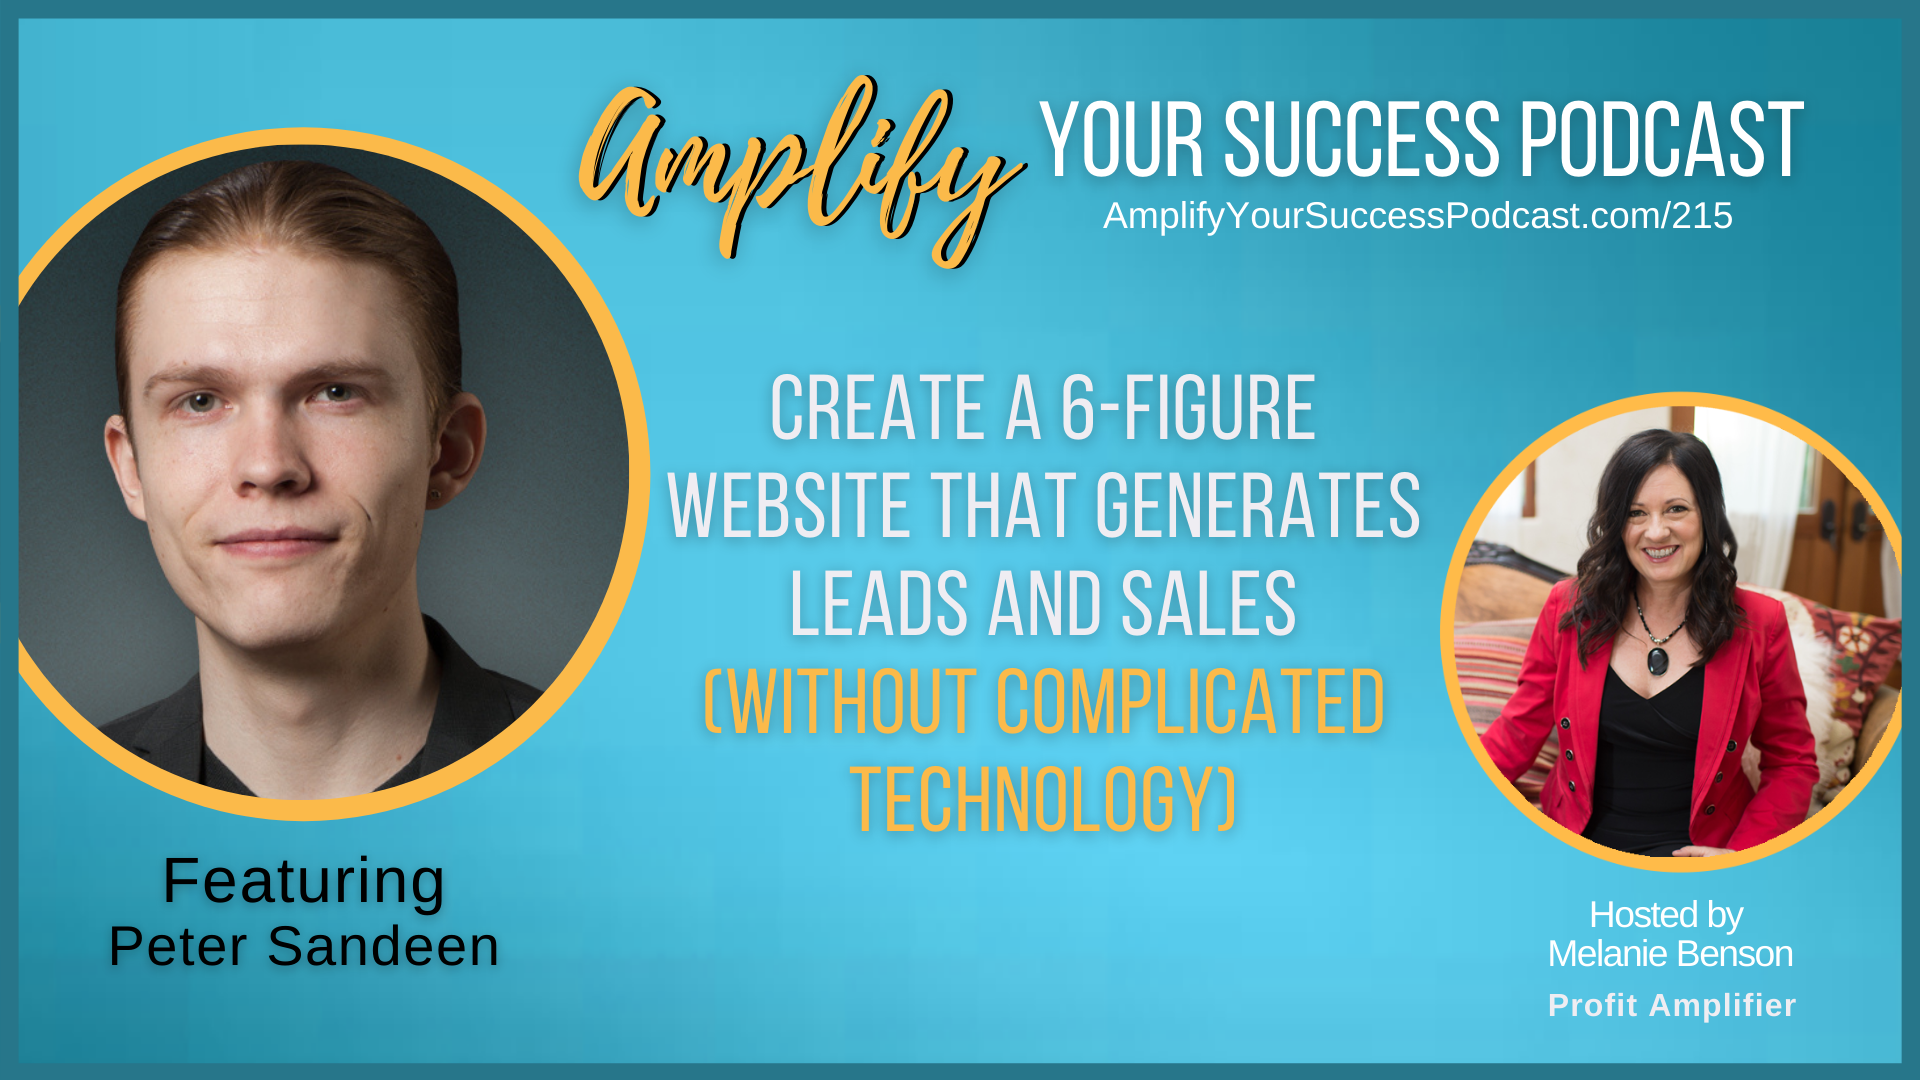 Create a 6-Figure Website to Get More Leads and Sales